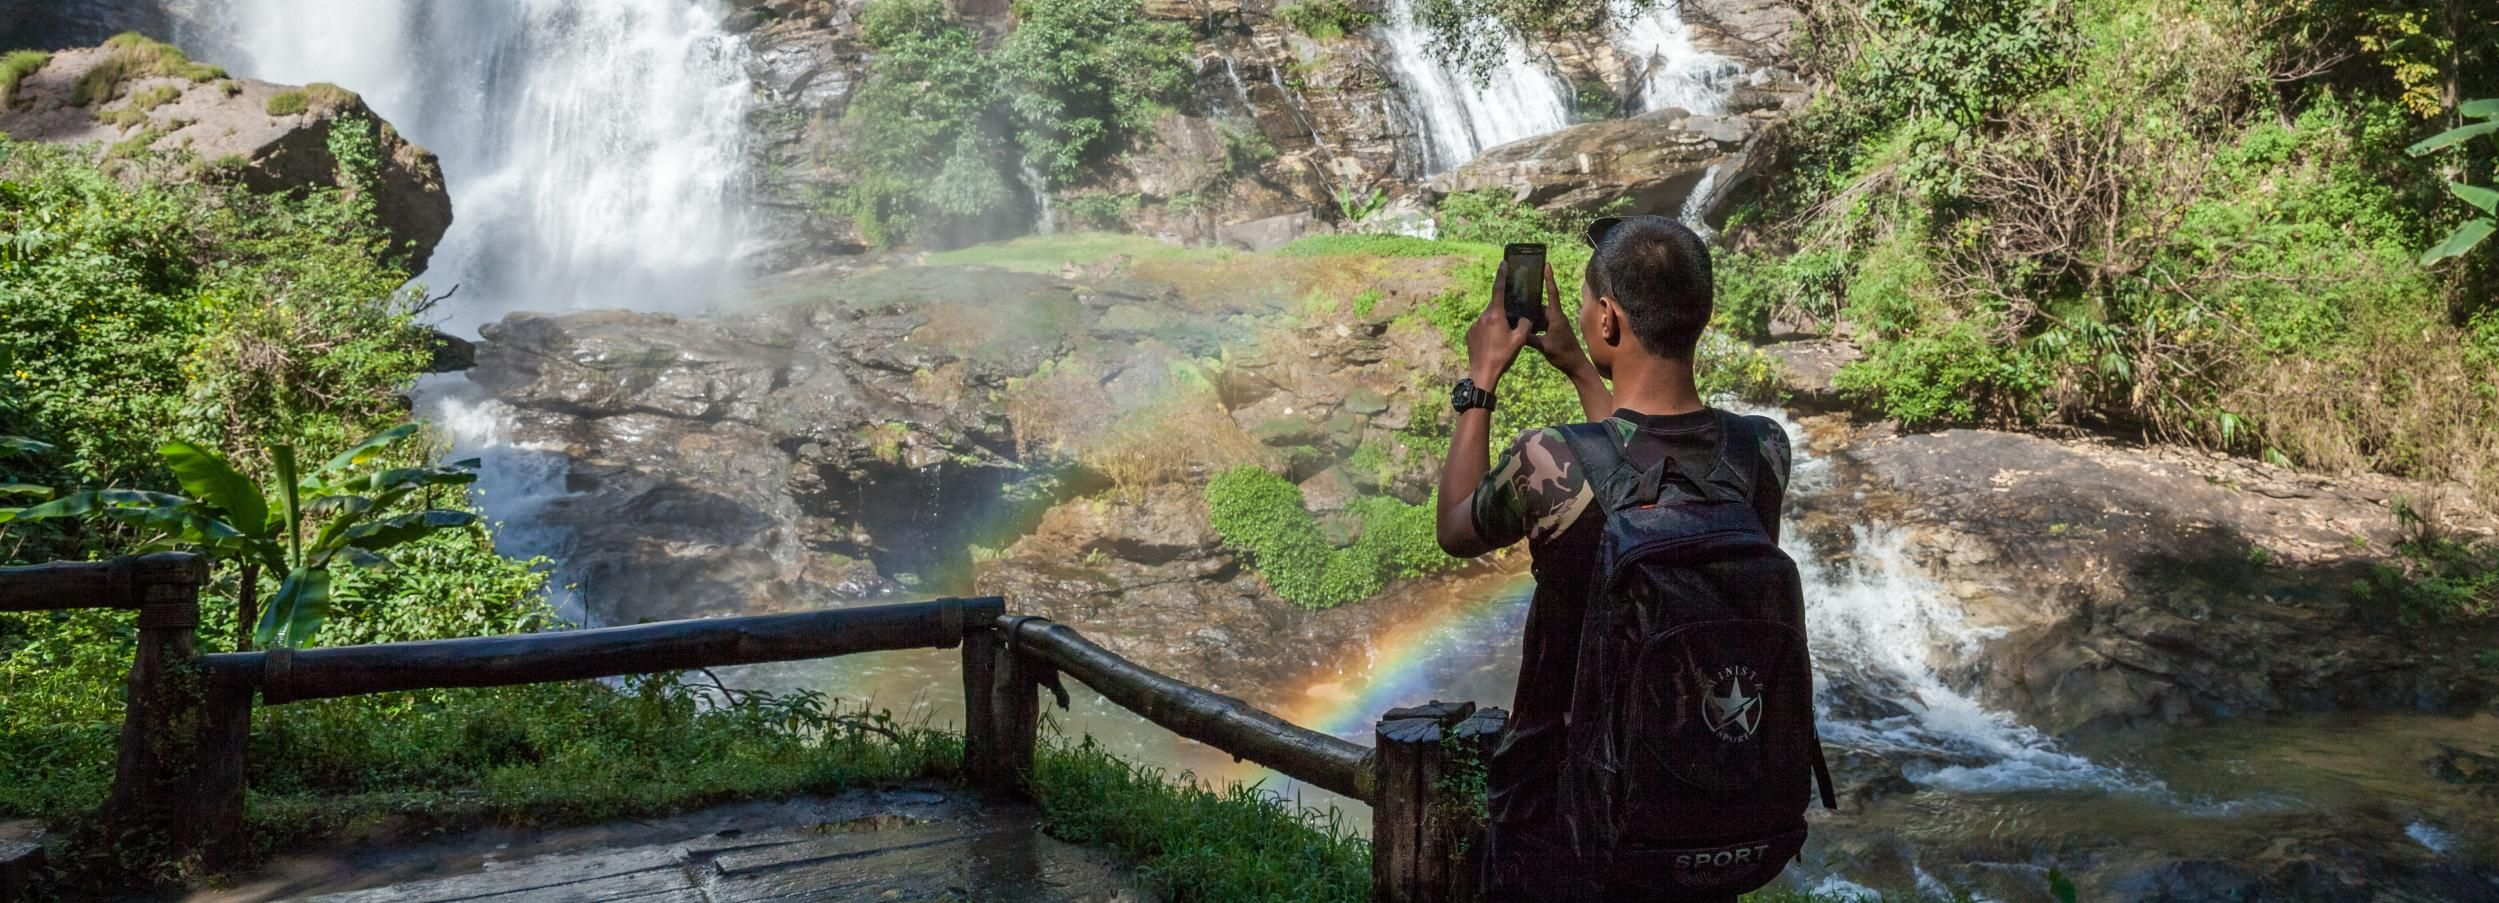 From Chiang Mai: Inthanon National Park 9-Hour Group Tour